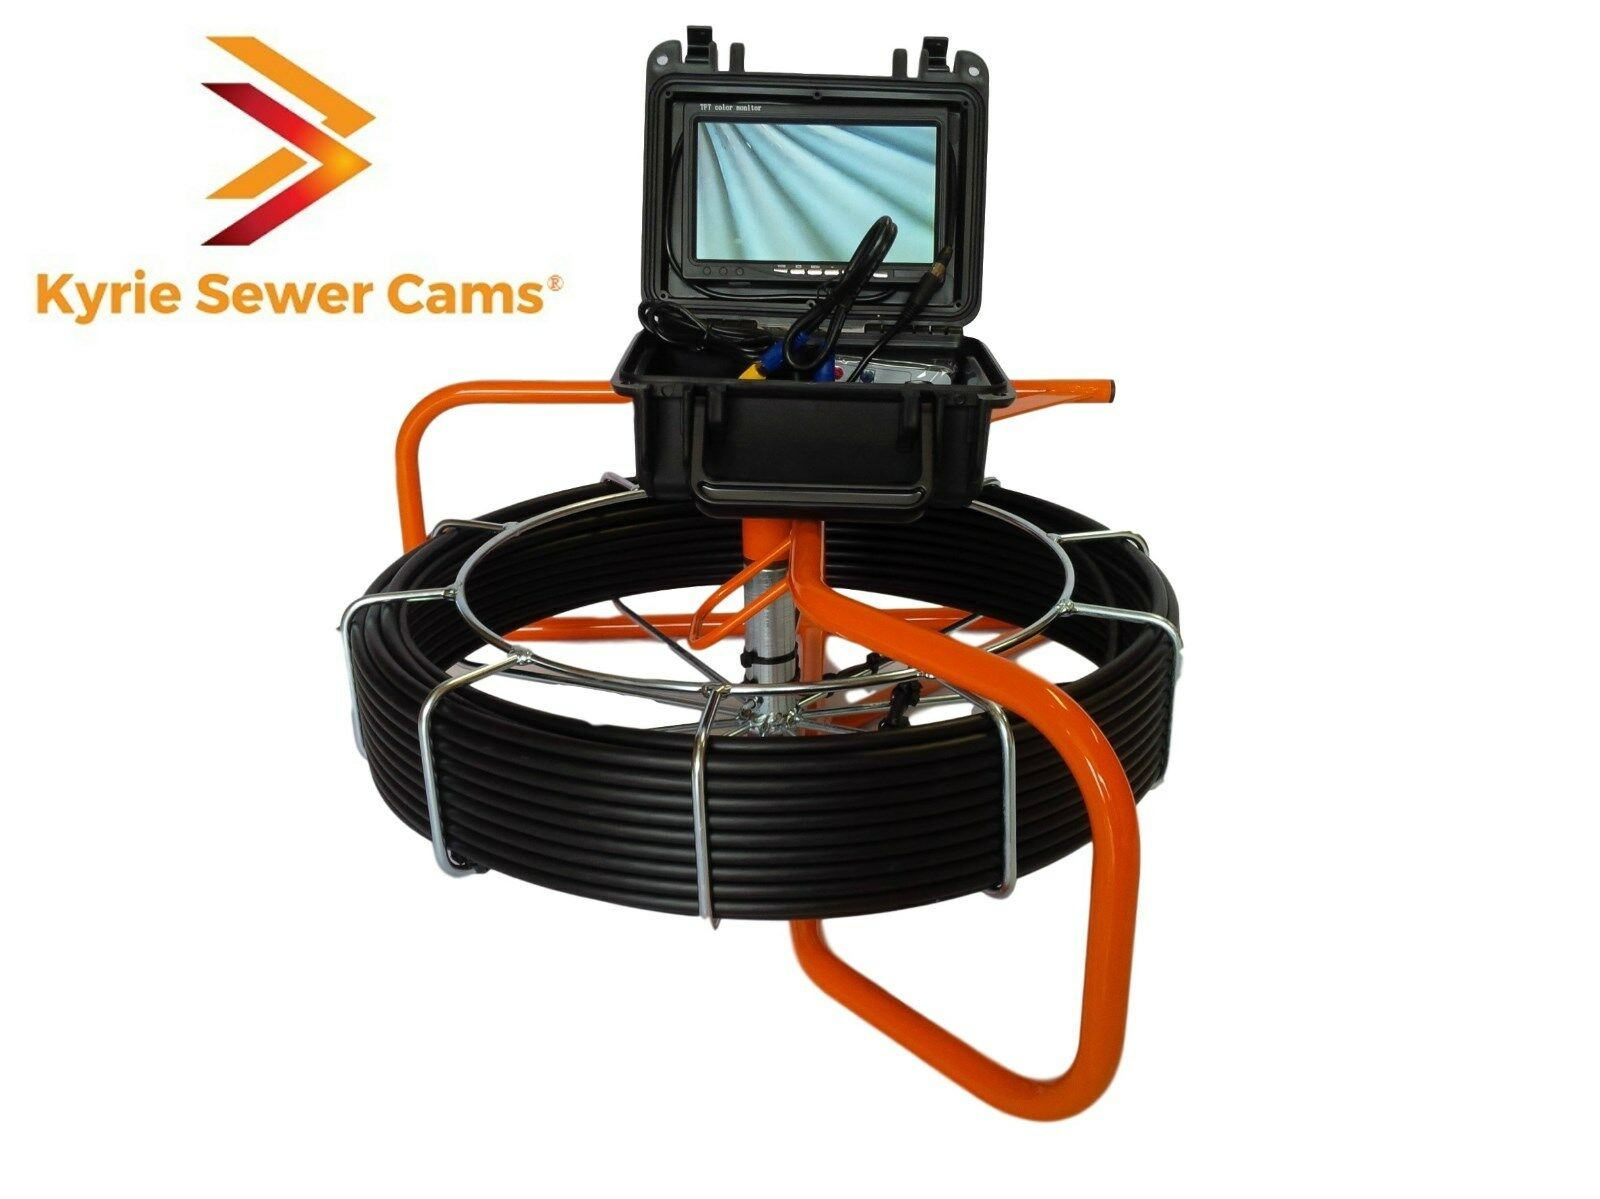 100 foot pipe inspection camera, sewer main inspection, 100' ft video scope